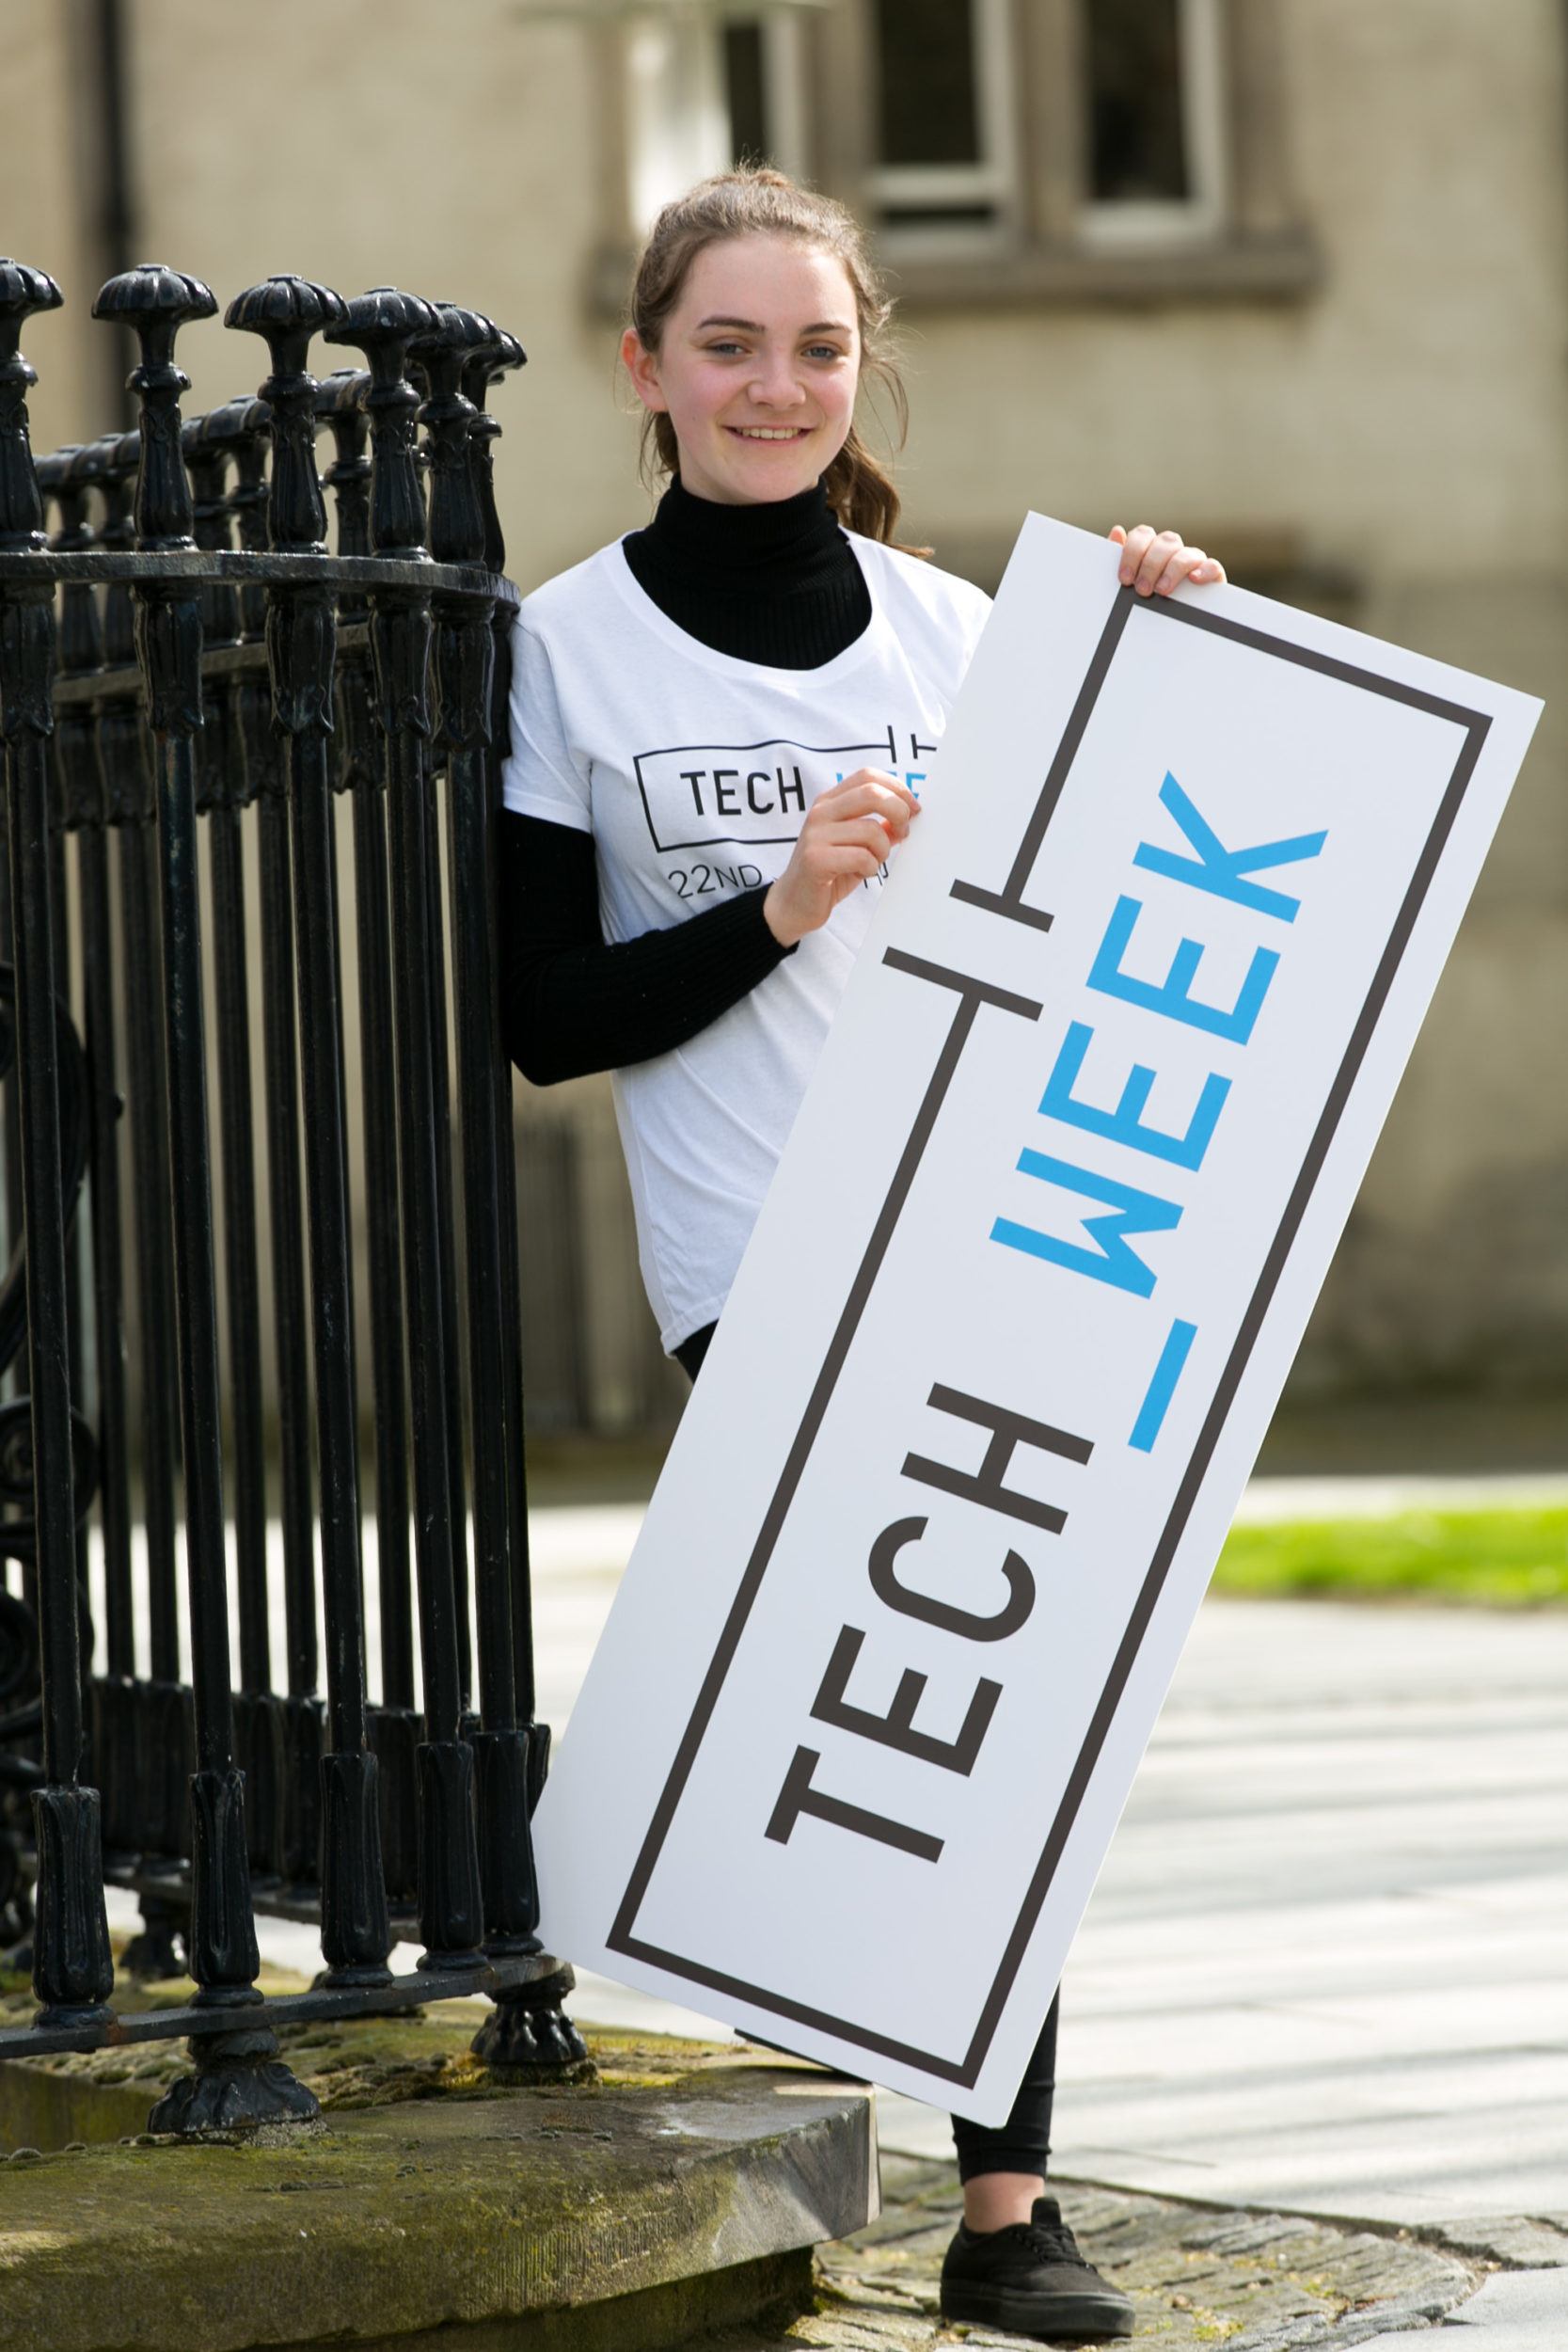 TECH WEEK IS BACK! Ireland's national festival of technology aimed at students, parents and the public, takes place all over Ireland this week and is sure to be a fun-filled week. Organised by the ICS Foundation, the social enterprise arm of the Irish Computer Society, and supported by Science Foundation Ireland (SFI) and Amazon Web Services (AWS), this exciting week of events will see over 120,000 students take part in a range of fun activities, including the finals of several national Tech Week events. Picture by Shane O'Neill, SON Photographic